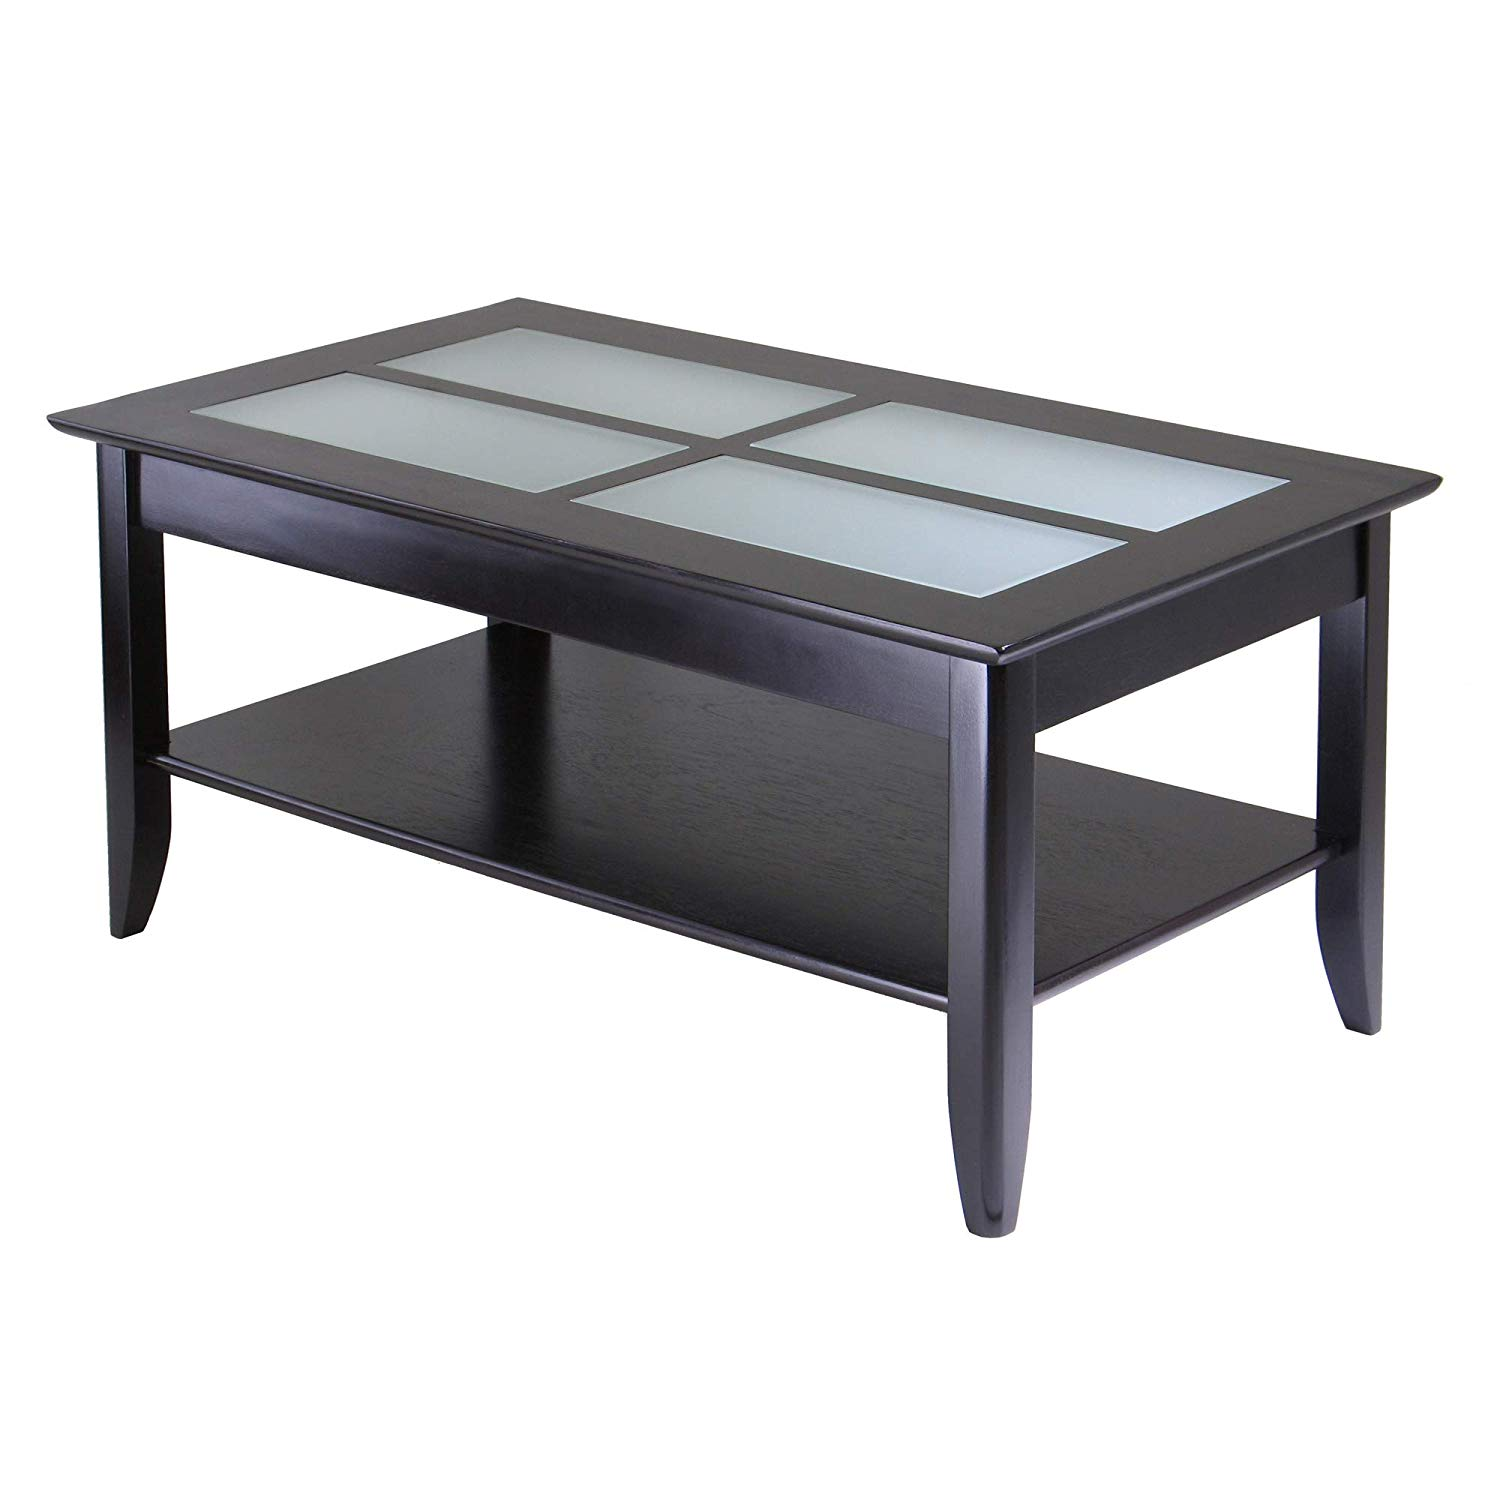 winsome syrah occasional table espresso kitchen end dining ashley furniture marsilona vintage half round thomasville mainstays side instructions leons ottawa black glass coffee